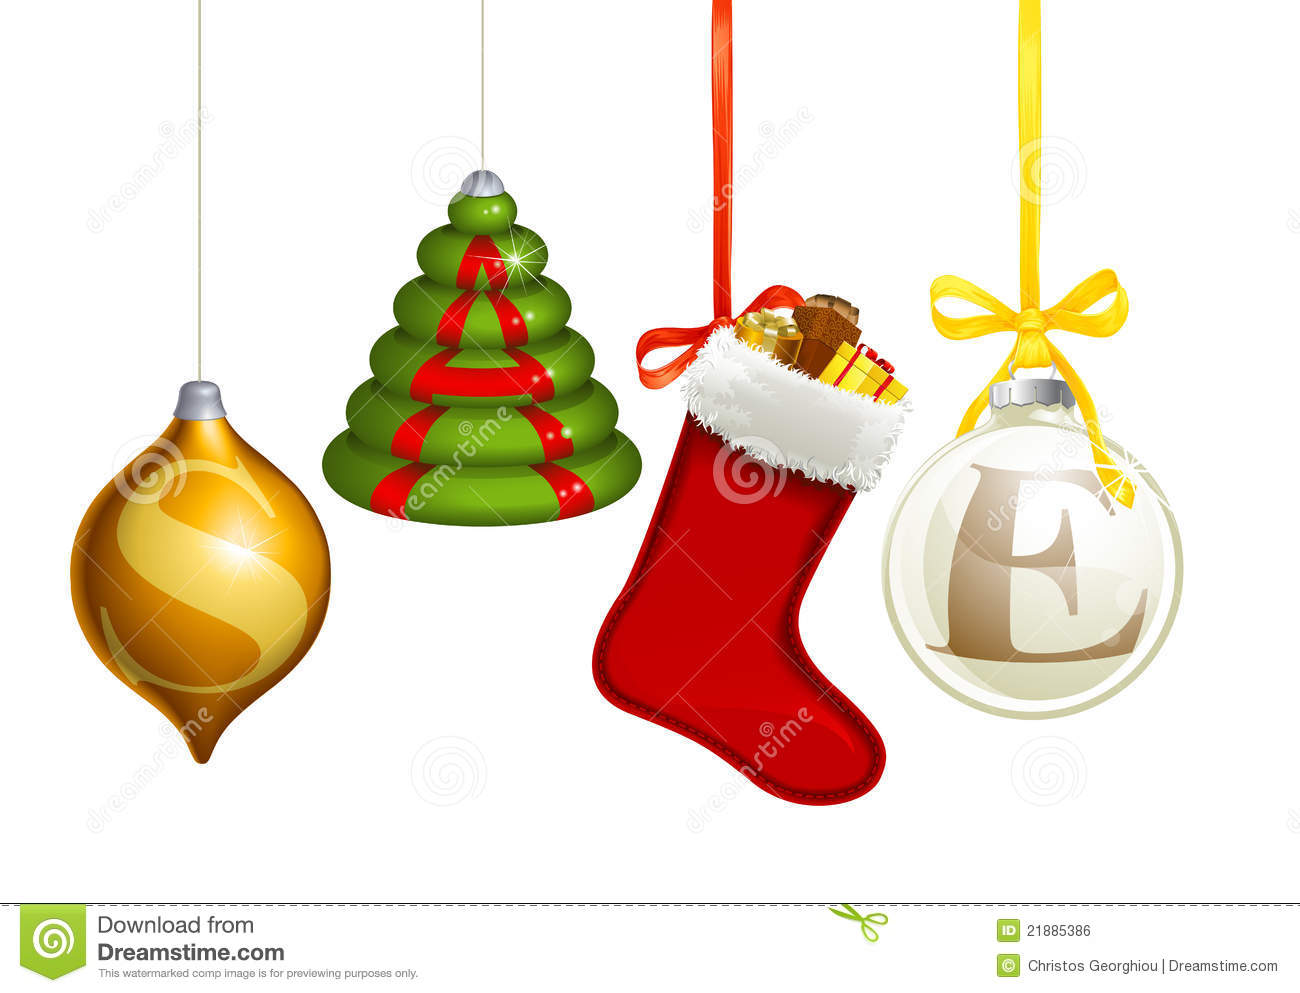 Sale christmas decorations royalty free stock image for Christmas sale items